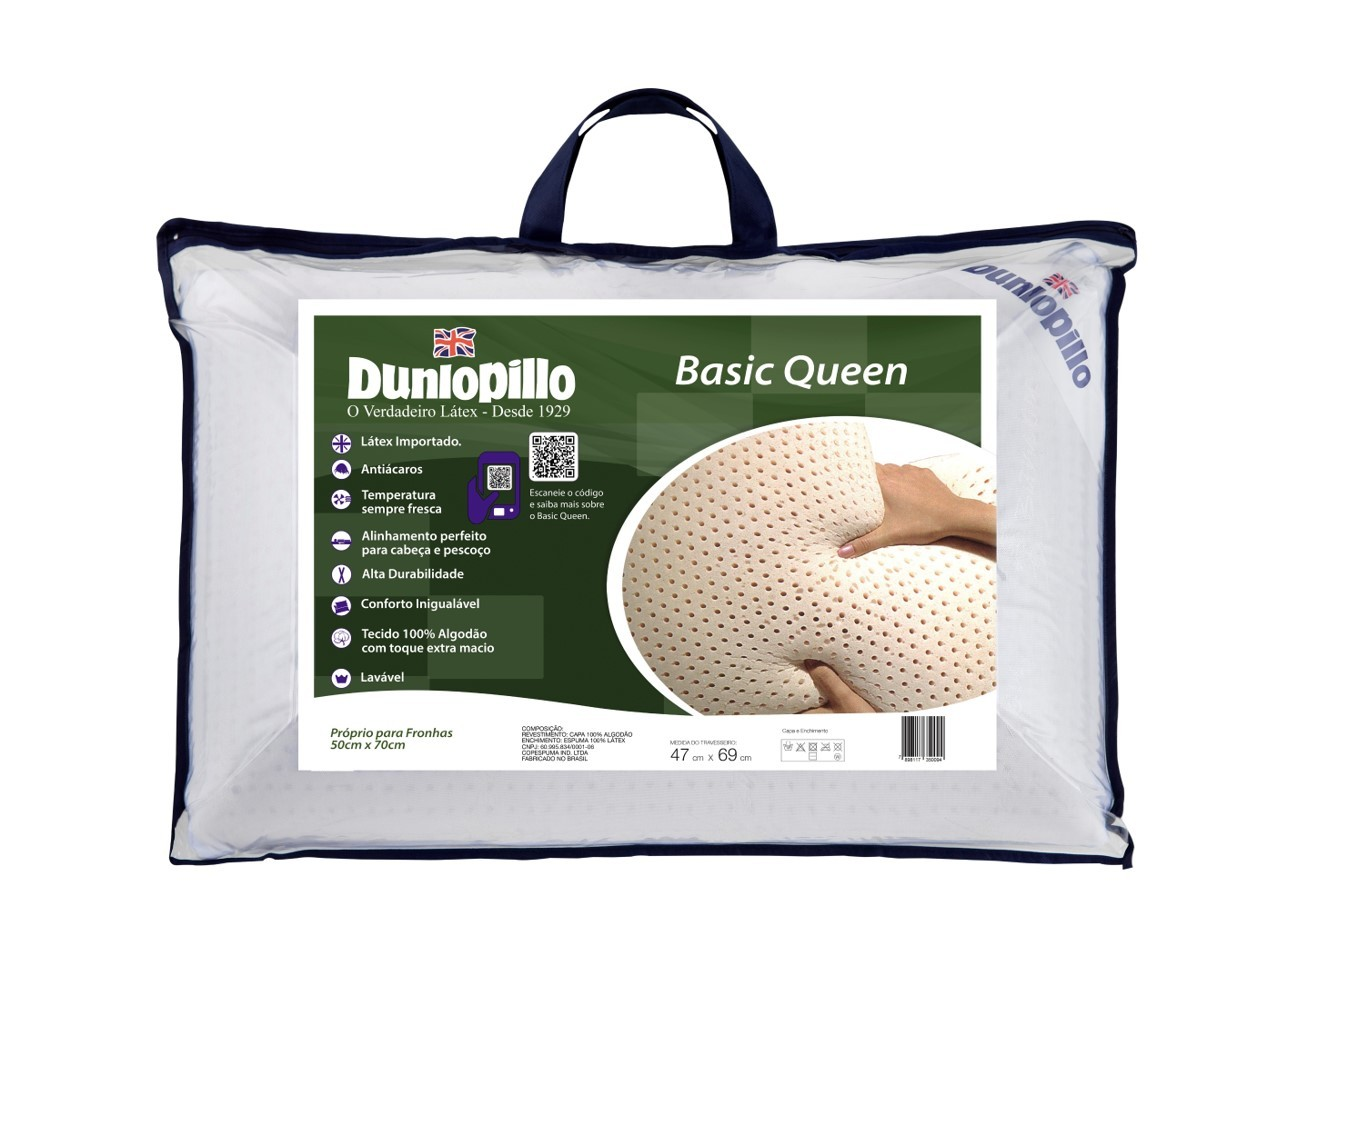 Travesseiro Basic Queen 0.50x0.70 100% Látex Natural - Dunlopillo